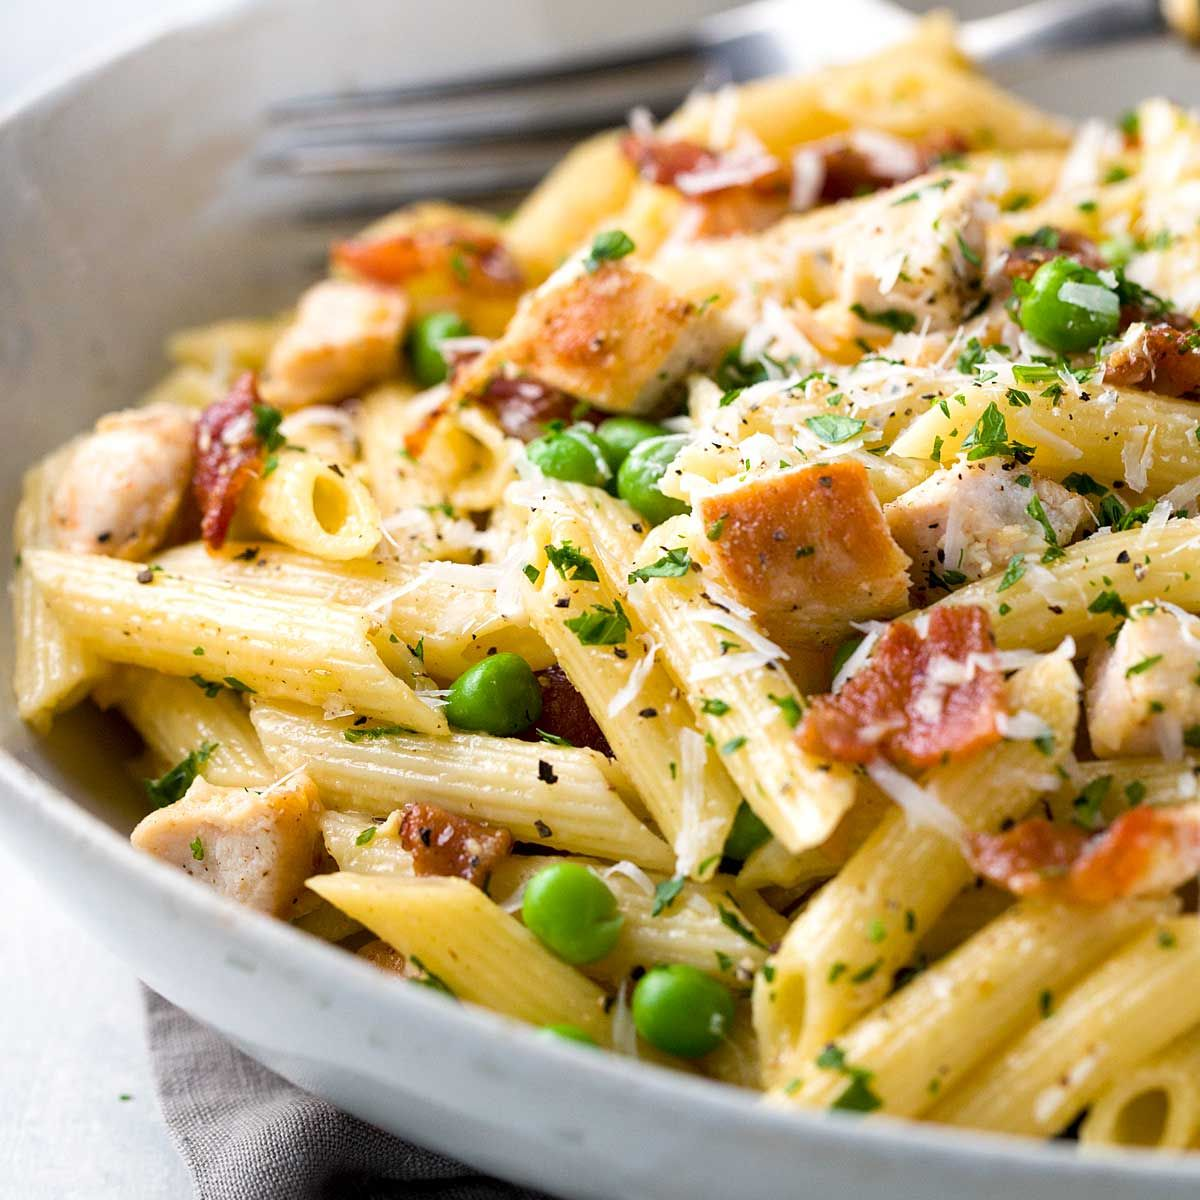 Barbecue Pork And Penne Skillet Recipe: One Pan Chicken Carbonara Penne Pasta